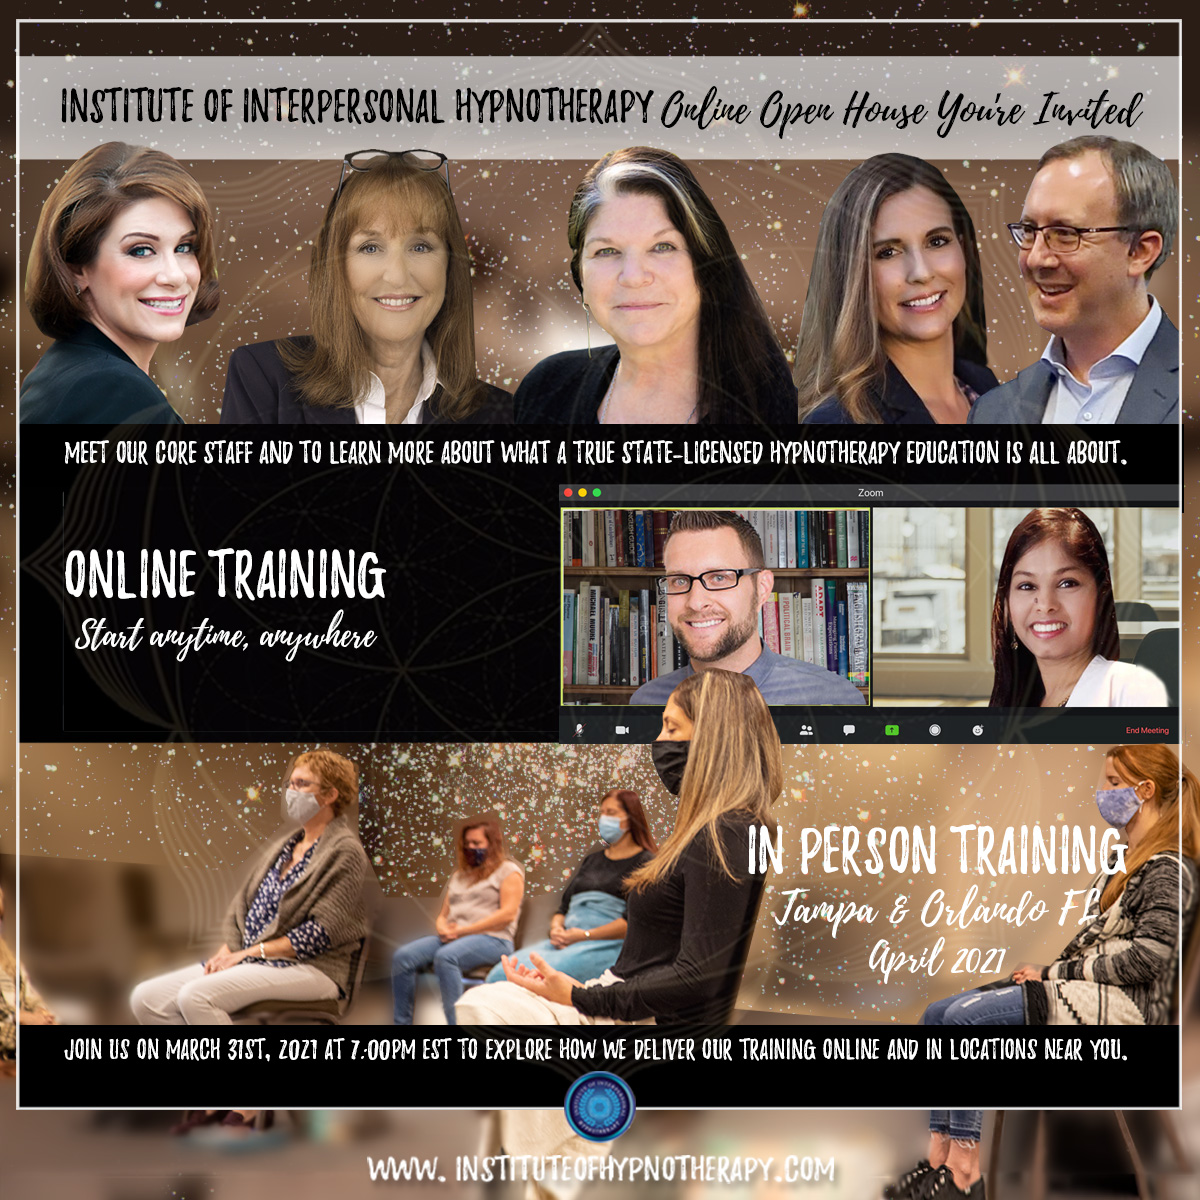 Institute of Interpersonal Hypnotherapy Online Open House – You're Invited